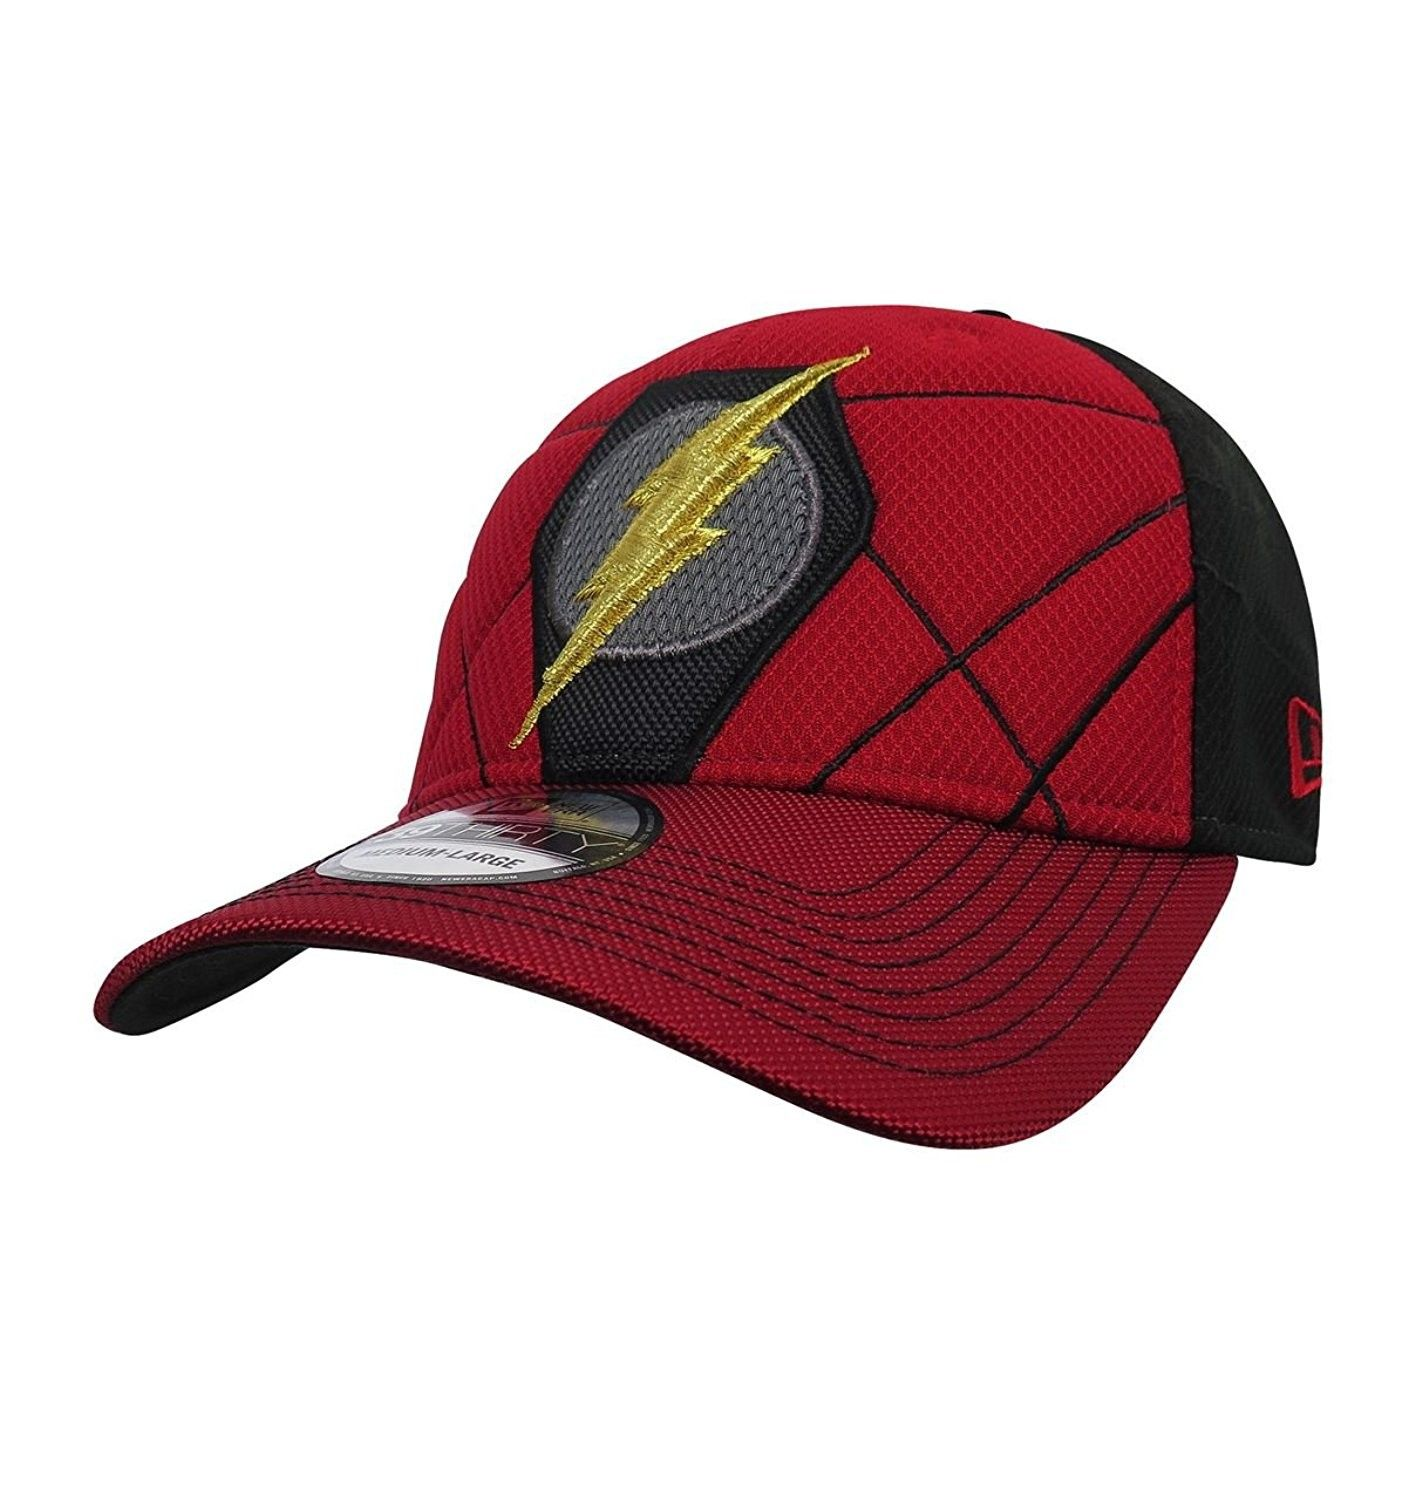 Flash Logo Justice League Armor 39thirty Fitted Hat C9186gzelir New Era Hats Fitted Hats Hats For Men